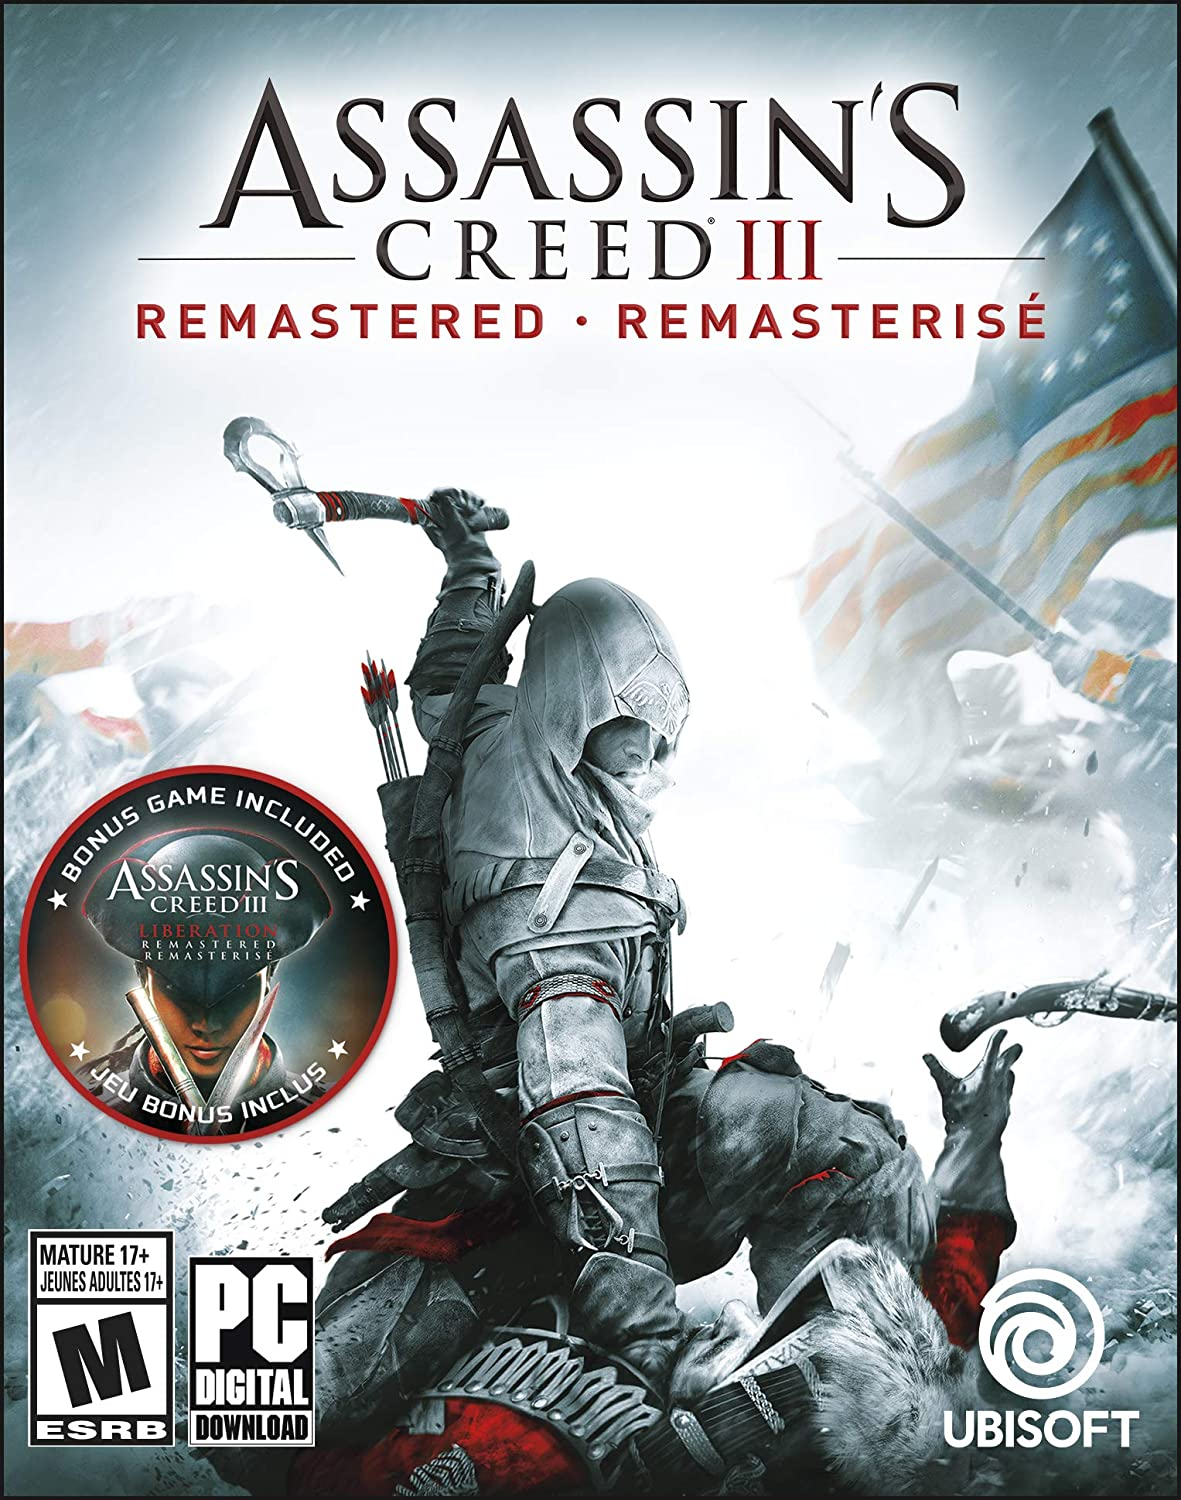 download assassins creed movie